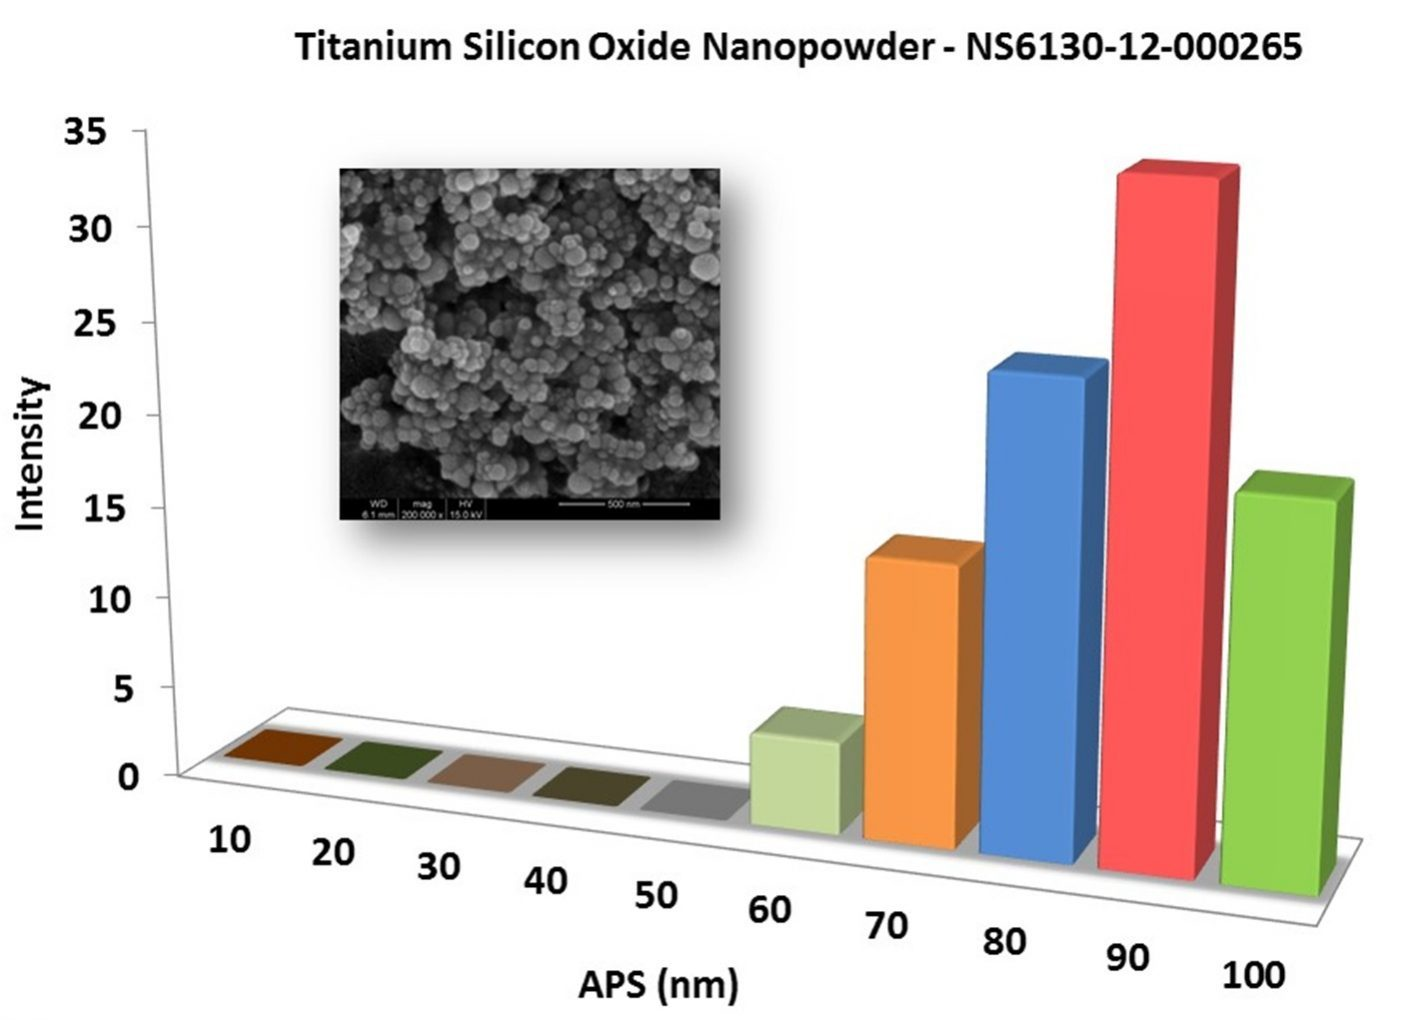 Particles Size Analysis – Titanium Silicon Oxide Nanoparticles